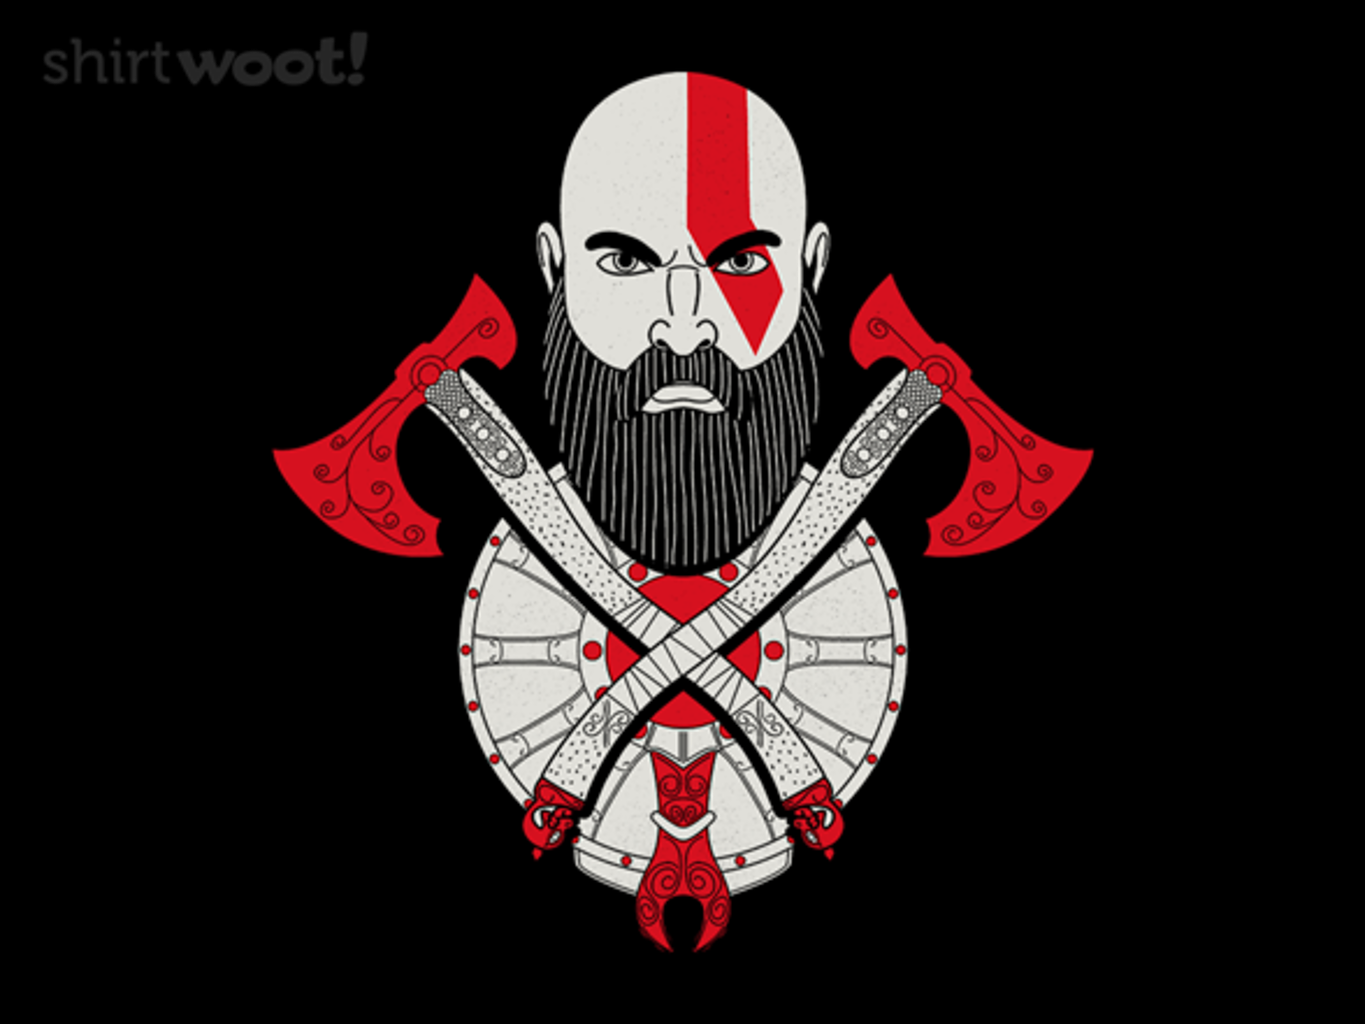 Woot!: Ghost of Sparta